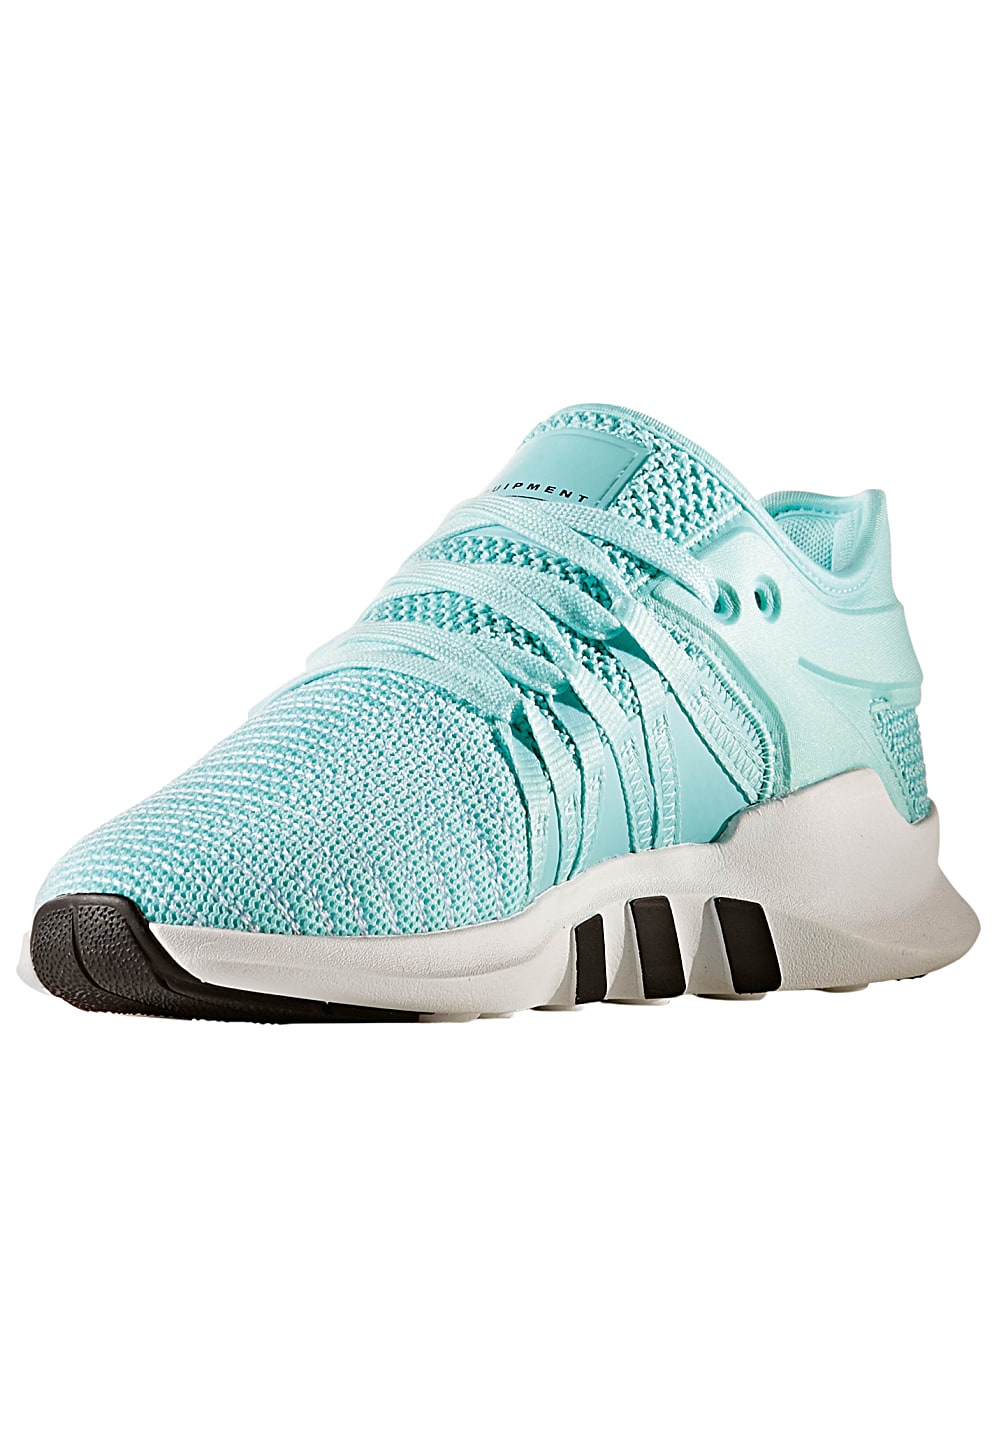 on sale 7fa10 a3801 Next. -10%. adidas Originals. Eqt Racing Adv - Sneaker für Damen